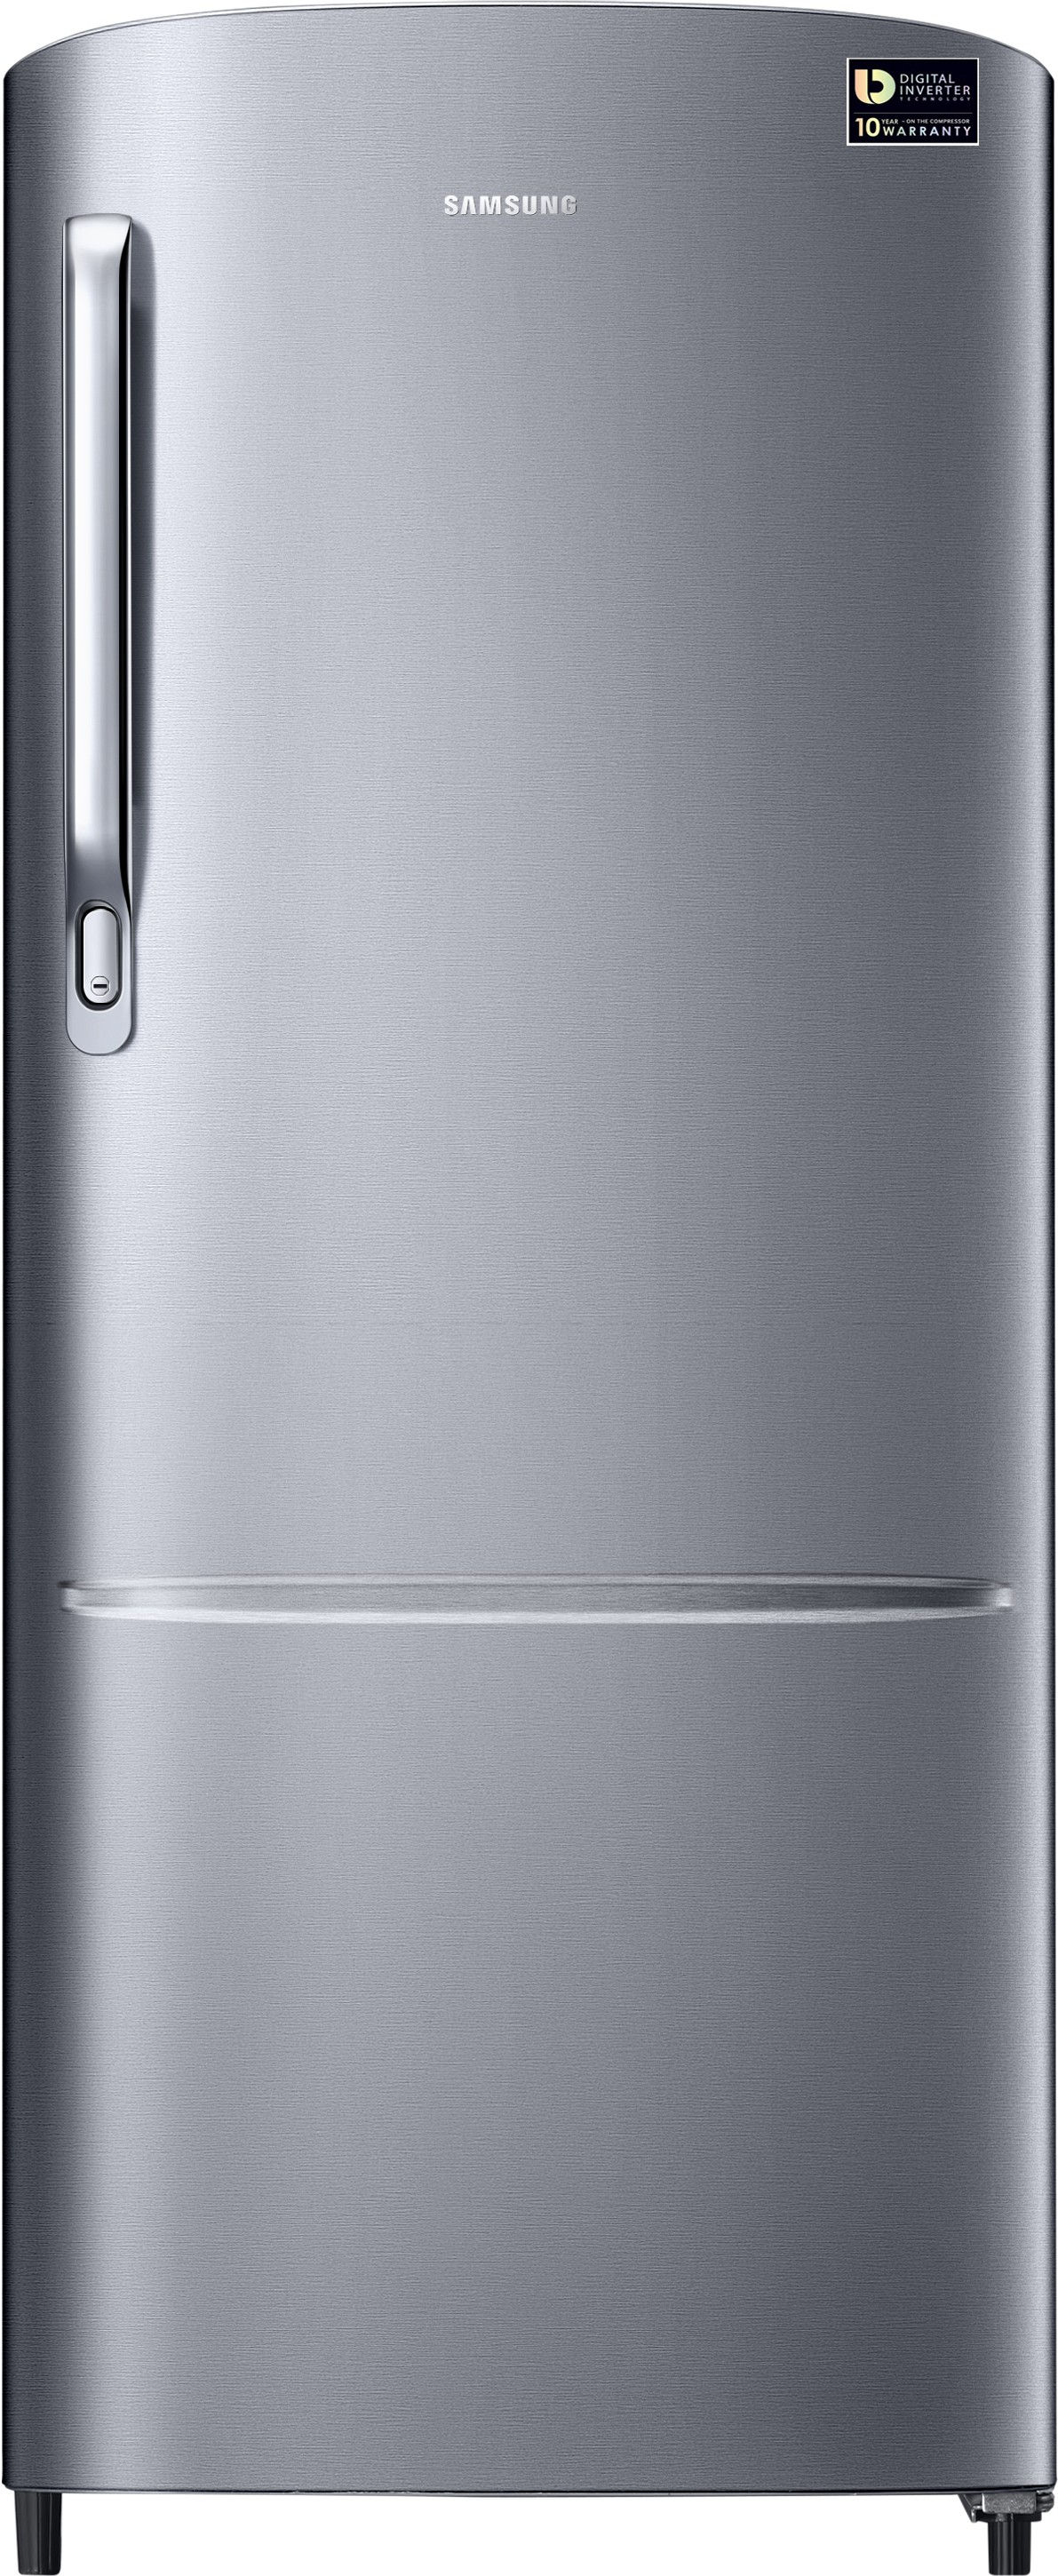 New Refrigerator Price Samsung Rr20m172zs8 Hl 192ltr Single Door Refrigerator